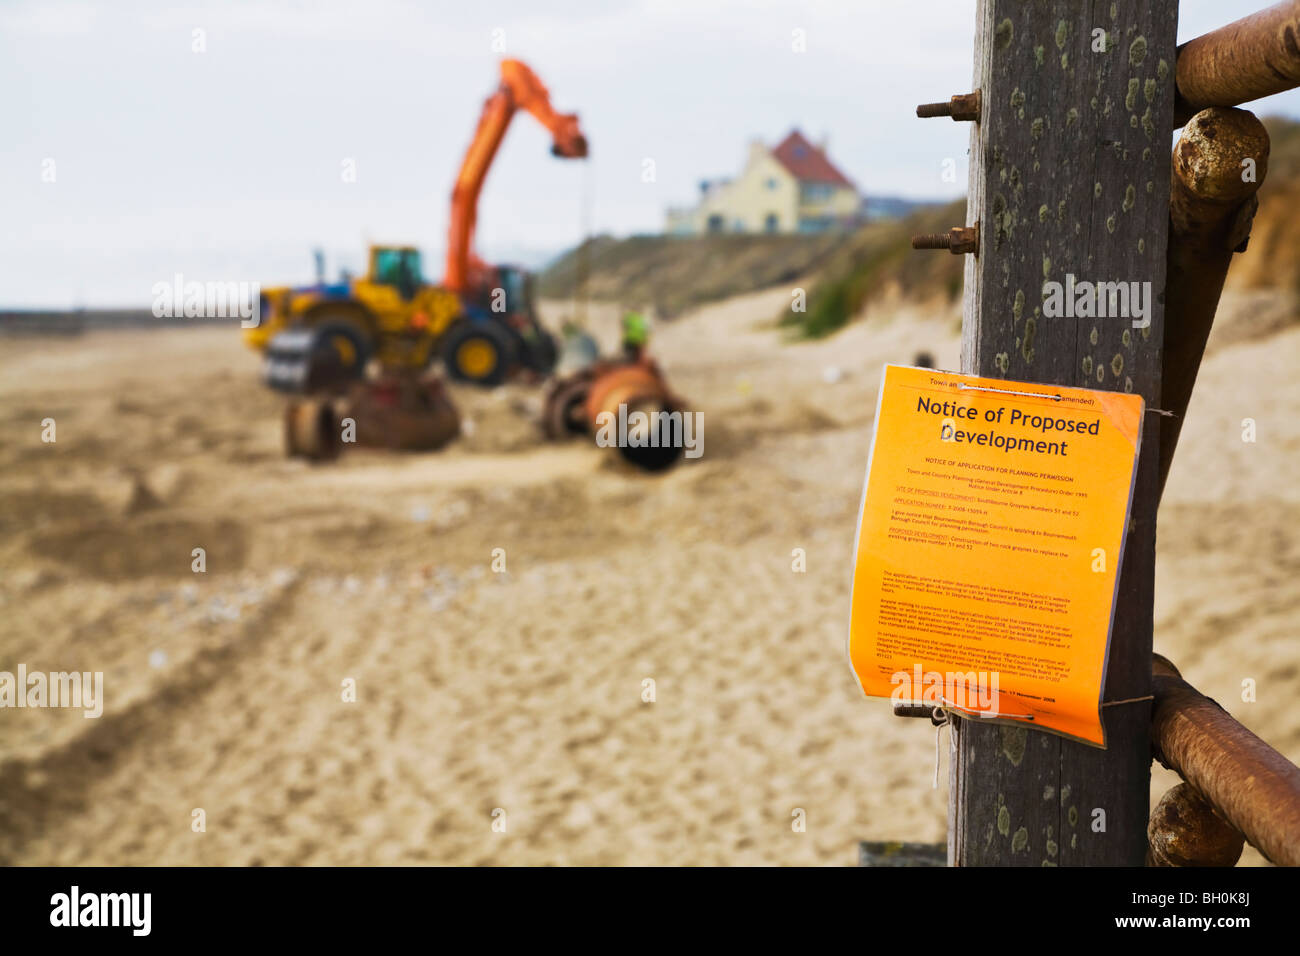 A Planning Notice of proposed maintenance on Bournemouth beach.  Construction of replacement groynes and pipe laying. Stock Photo